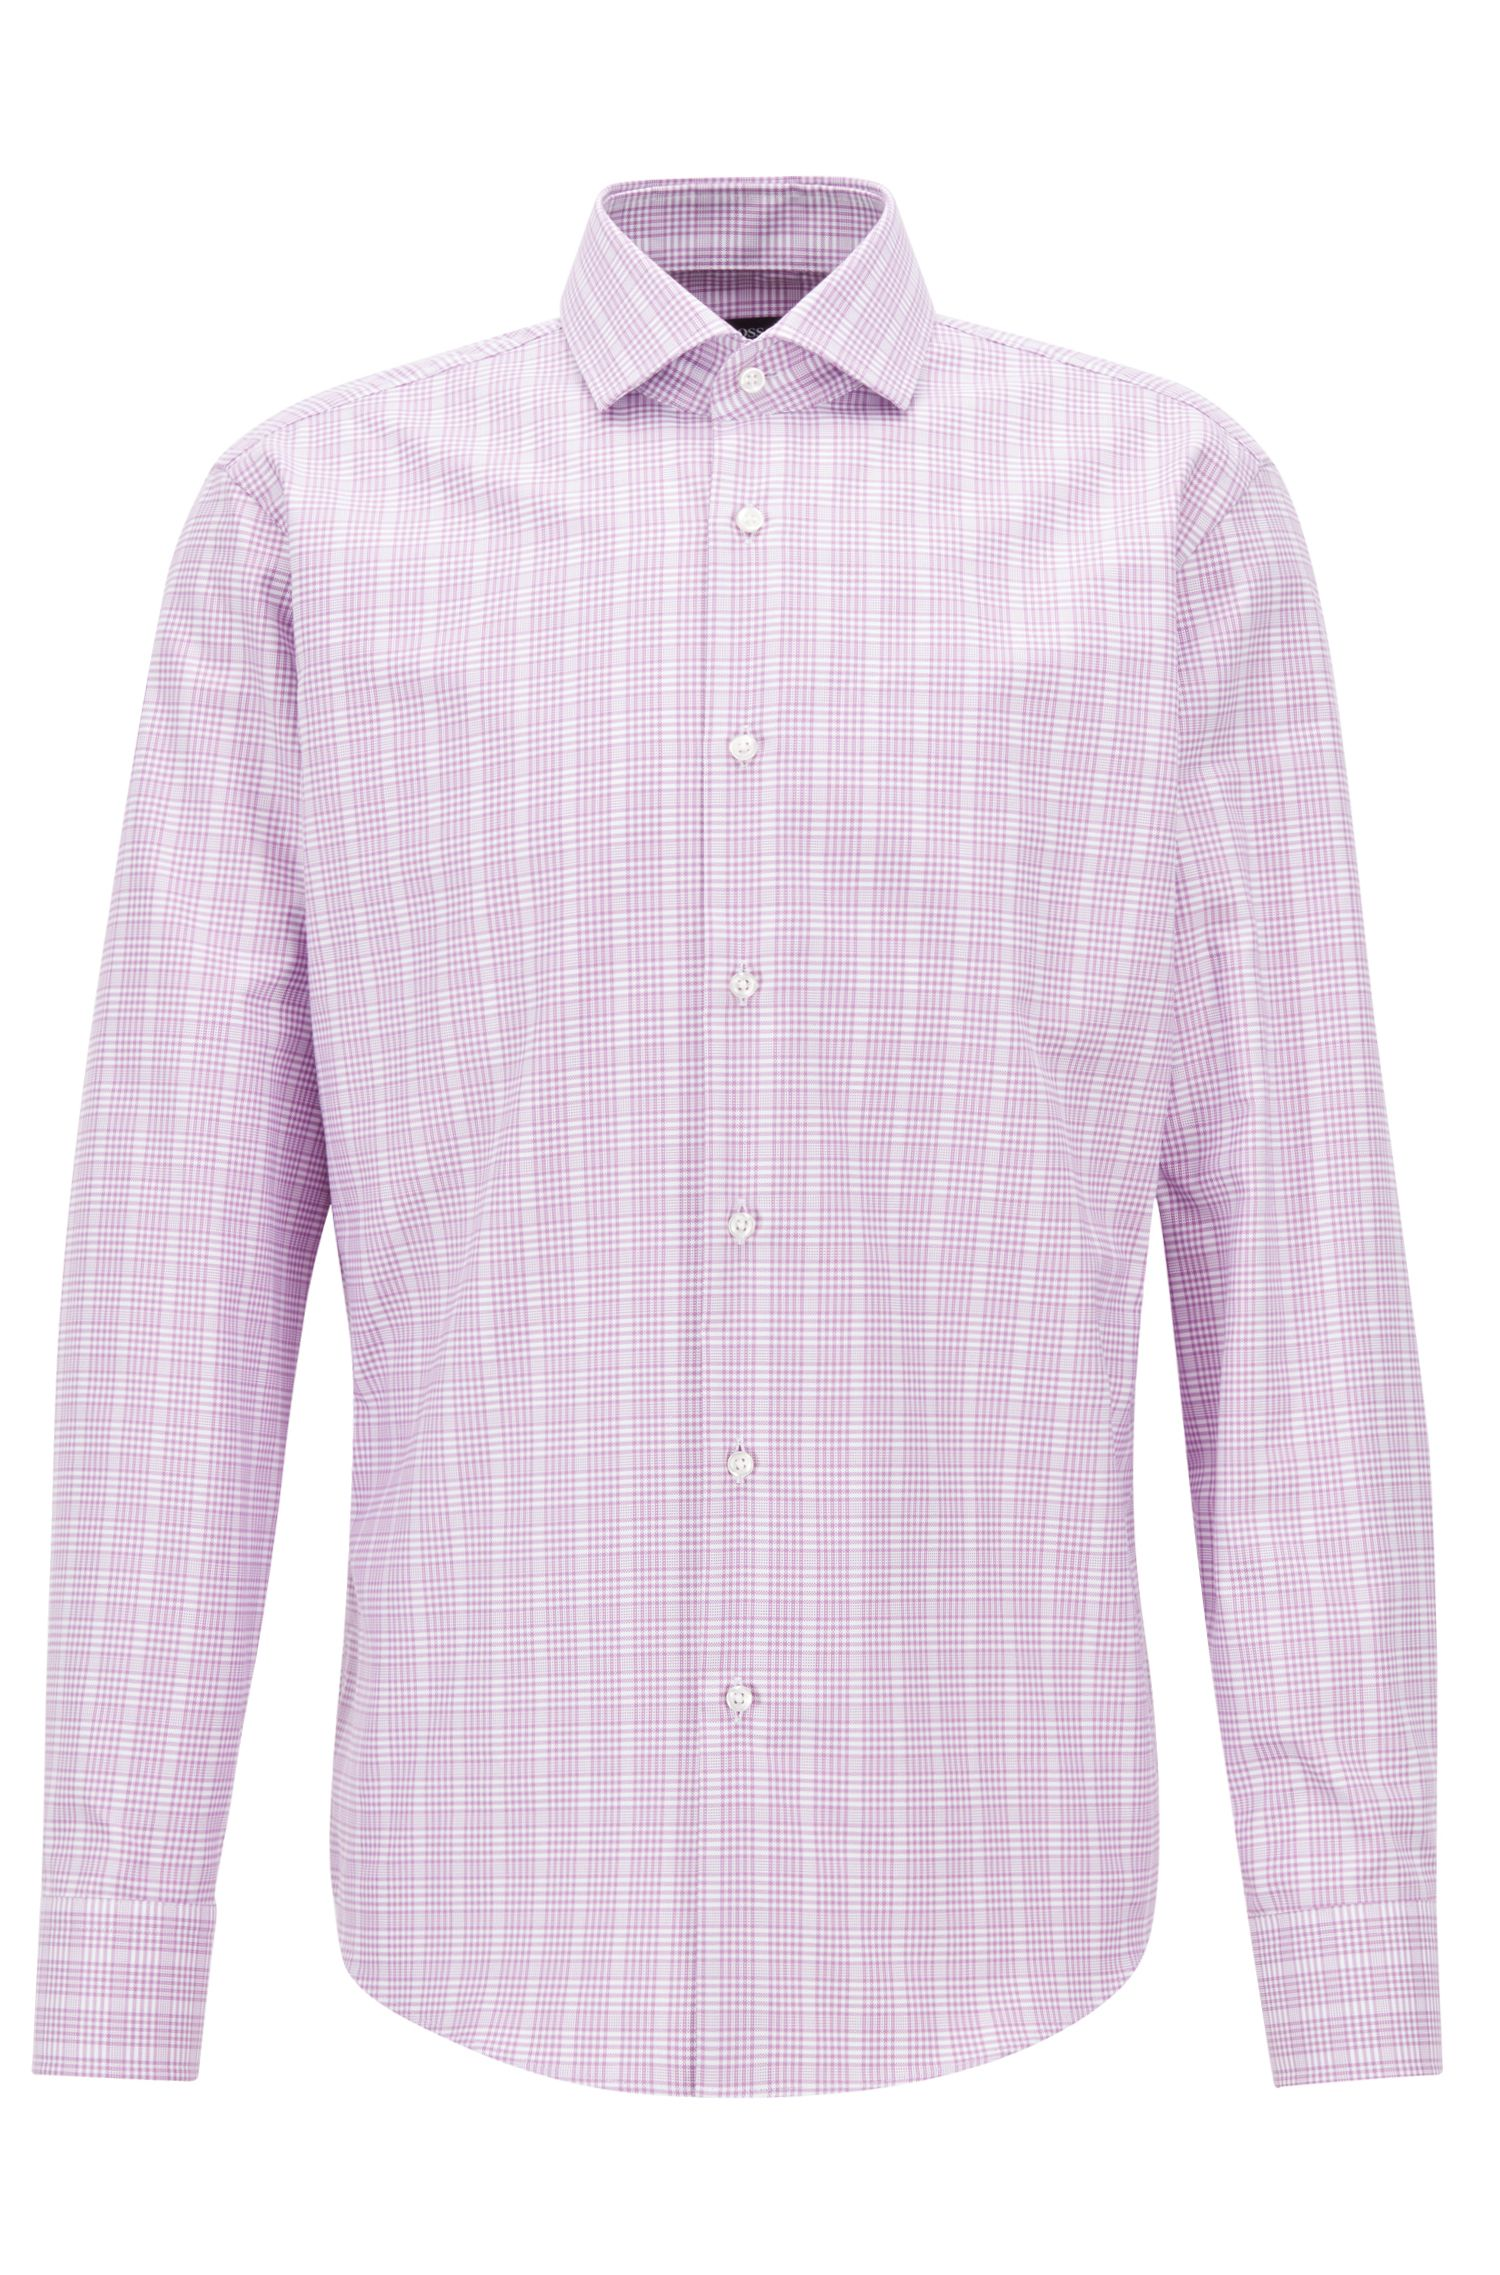 Glen-check shirt in cotton with Fresh Active finishing, Purple